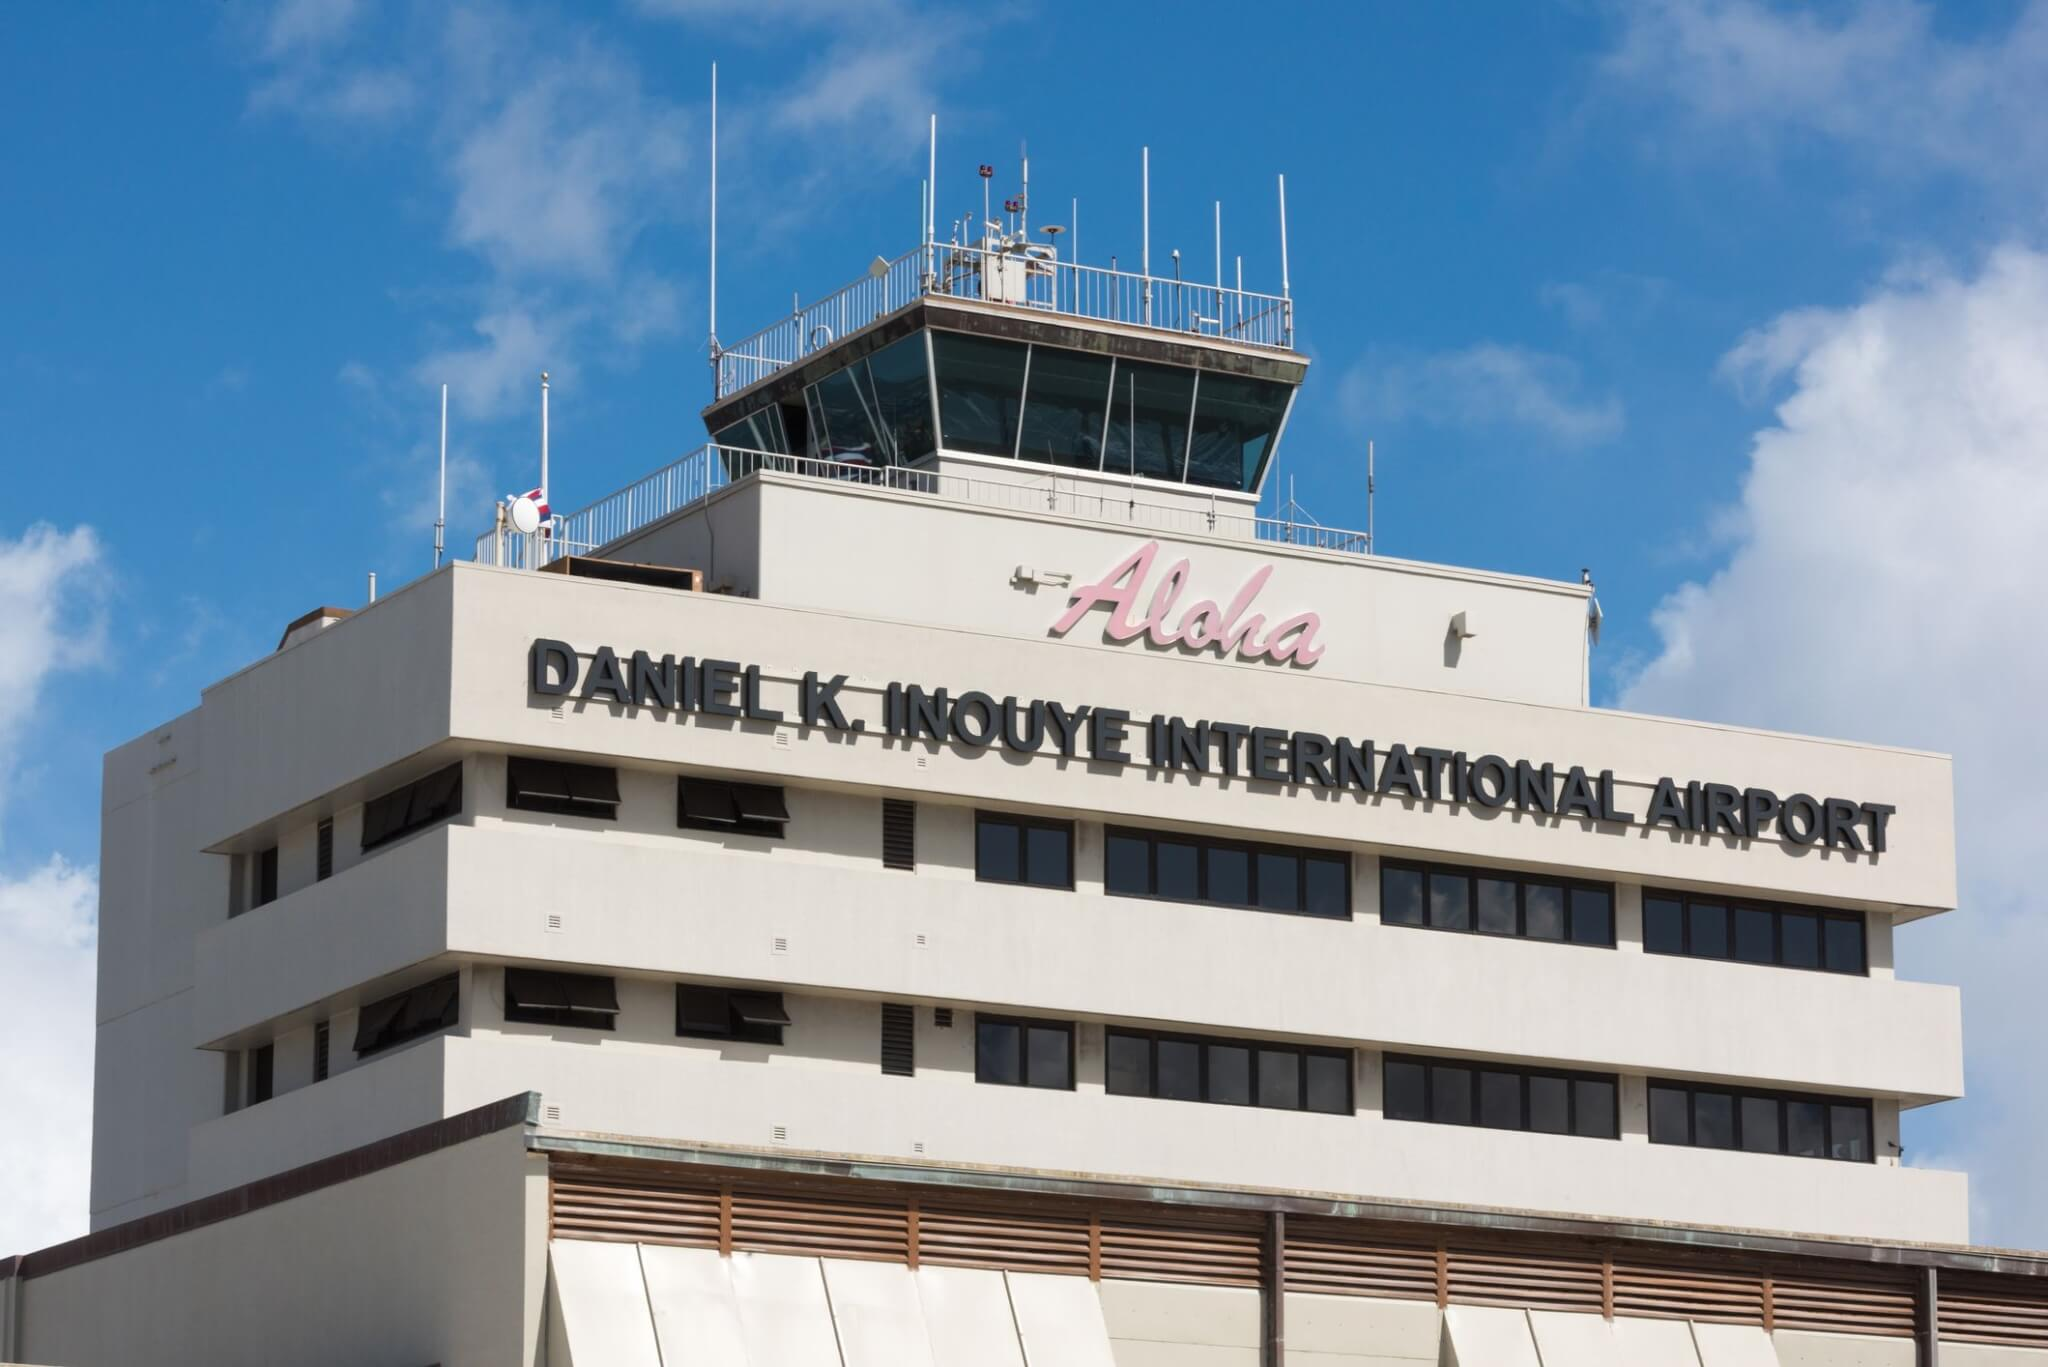 Honolulu airport named best in US to fly from this Thanksgiving